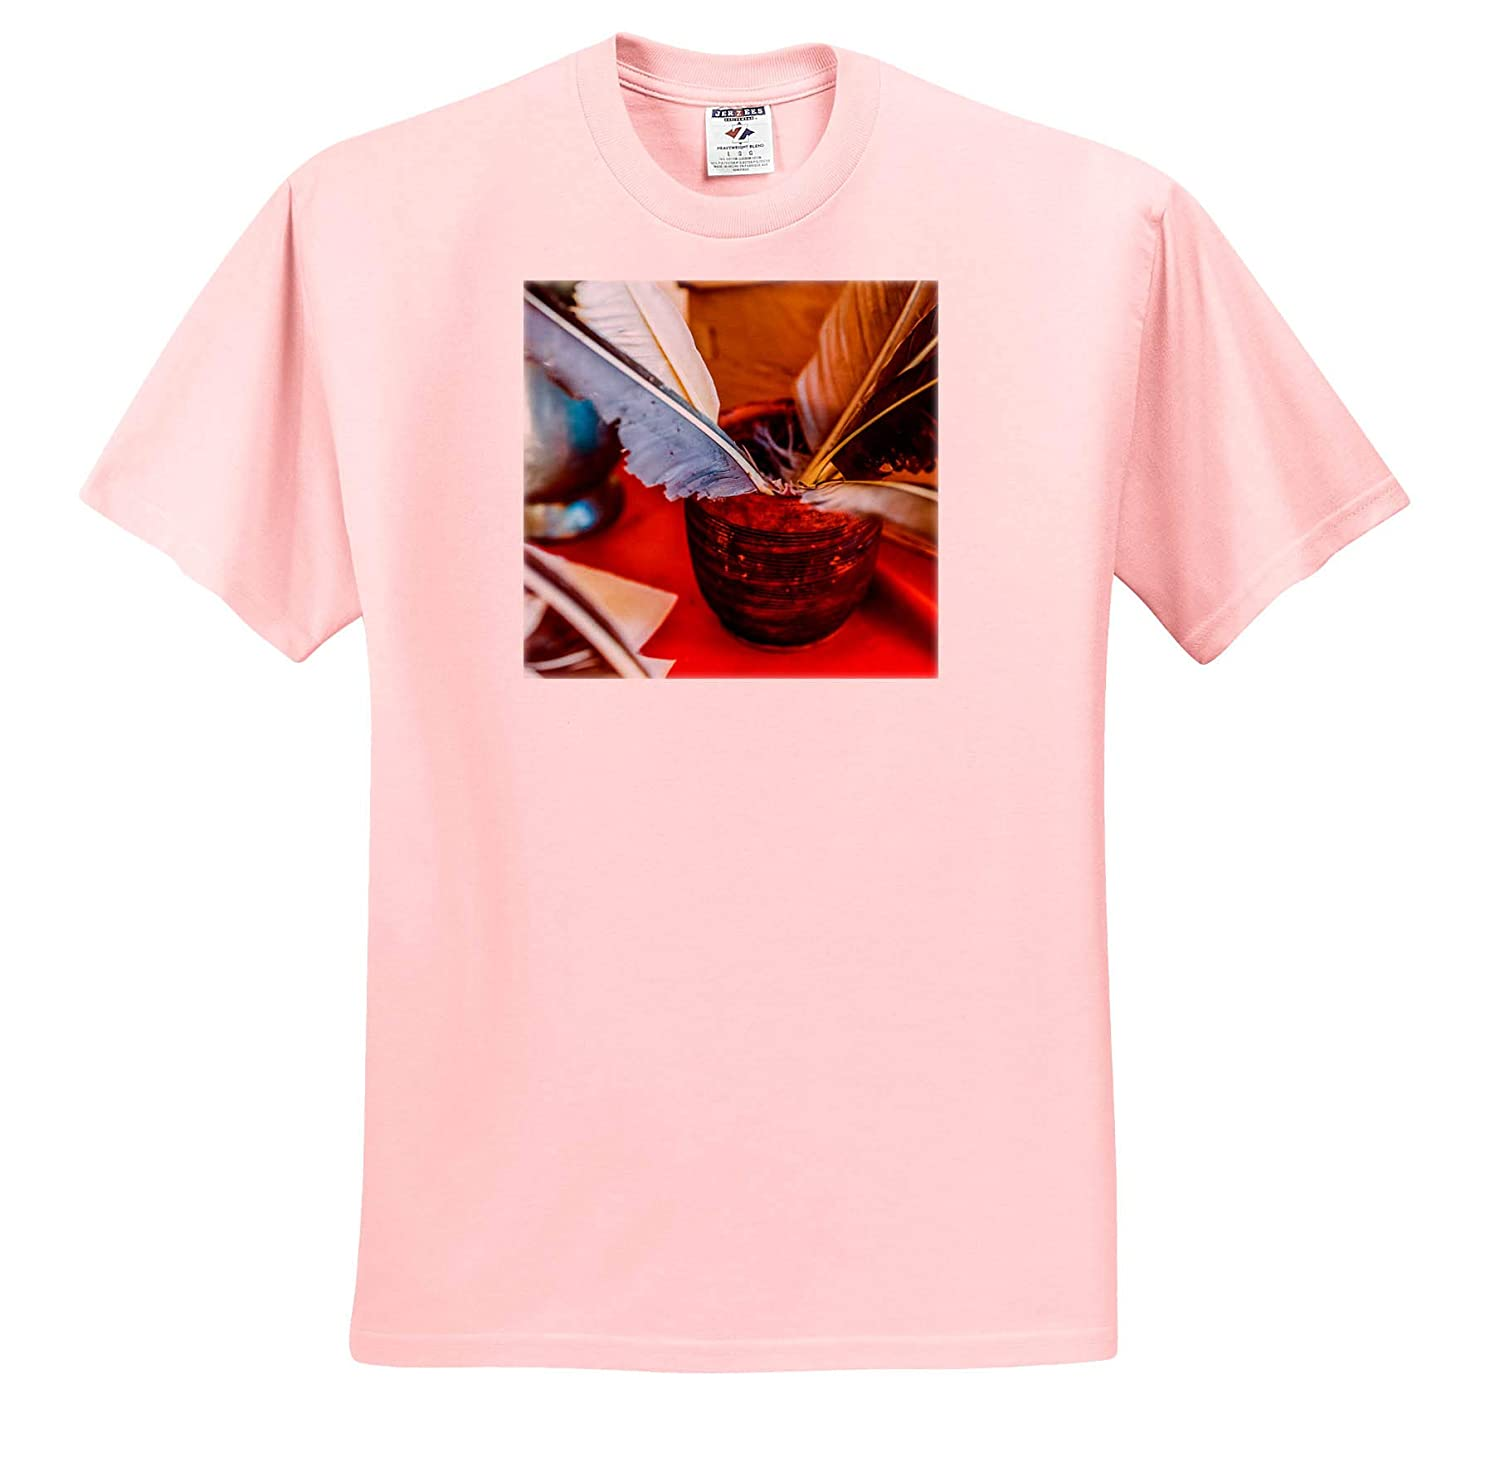 - Ceramic Bowl Filled with quills on a Table Covered with red Cloth 3dRose Alexis Photography T-Shirts Objects Misc